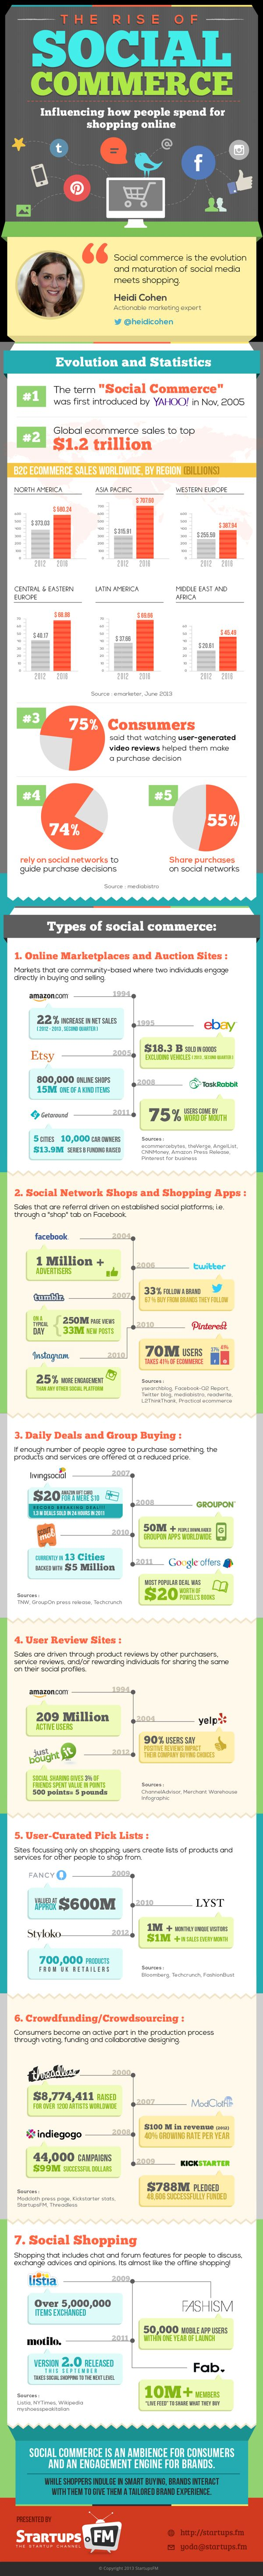 Infographic : The Rise Of Social Commerce by Jhilik Dasgupta, via Behance